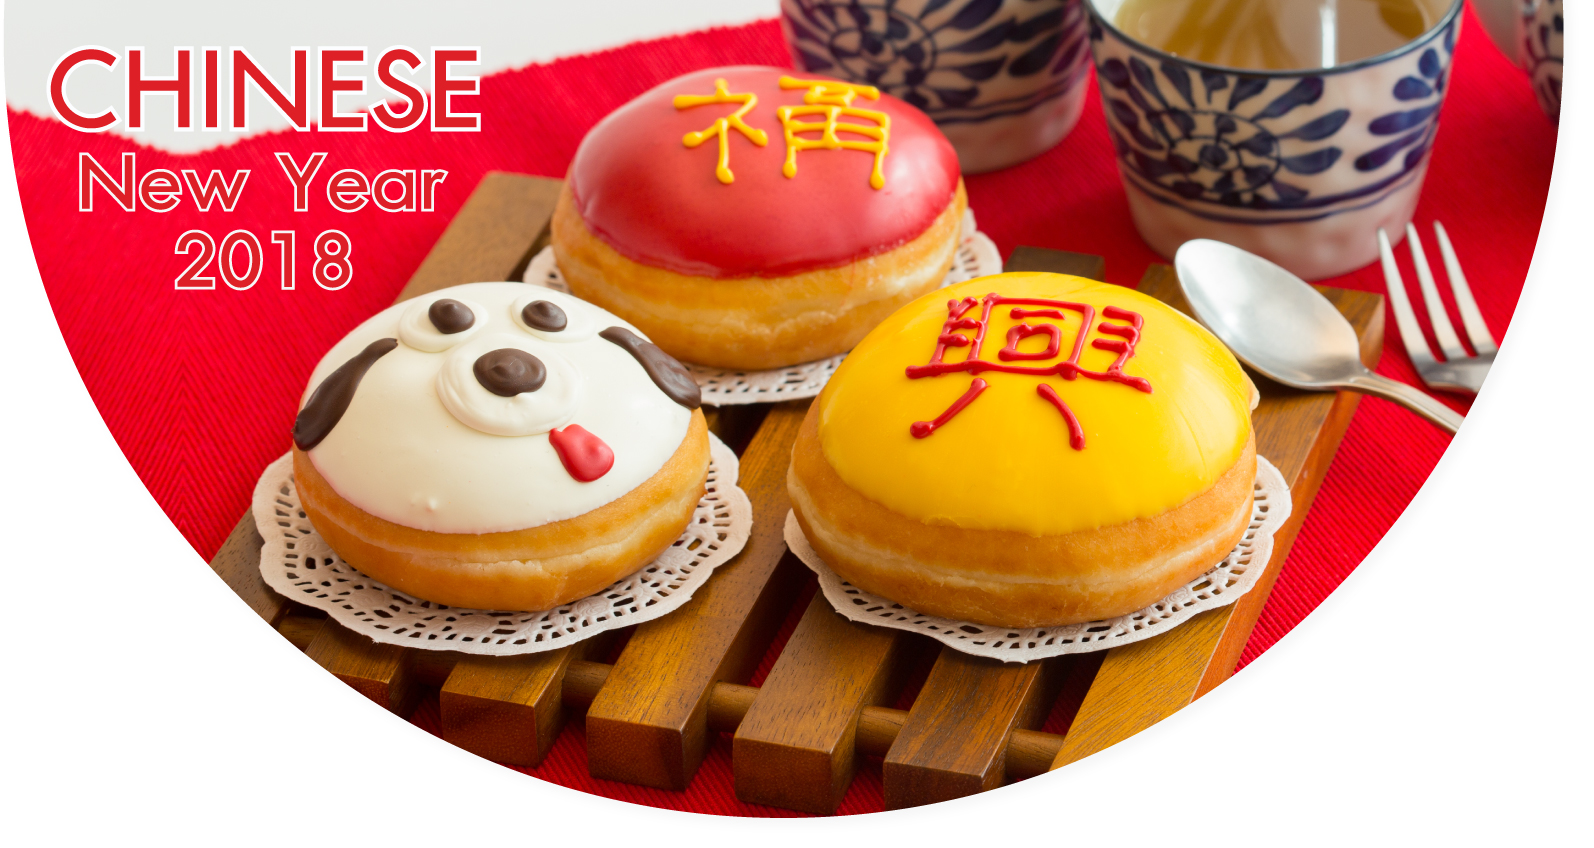 krispykreme_website_cny